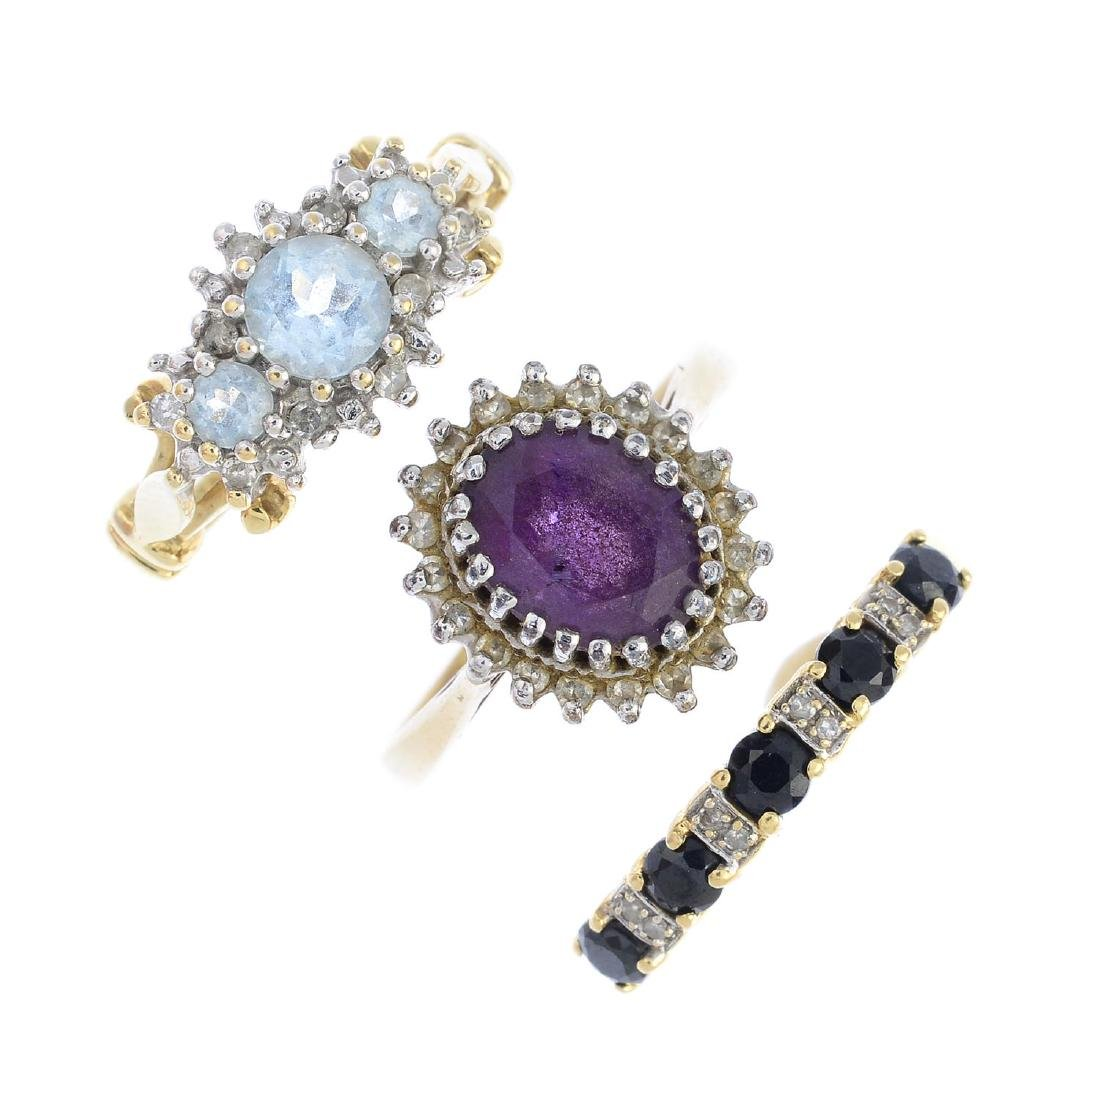 A selection of four diamond and gem-set dress rings. To